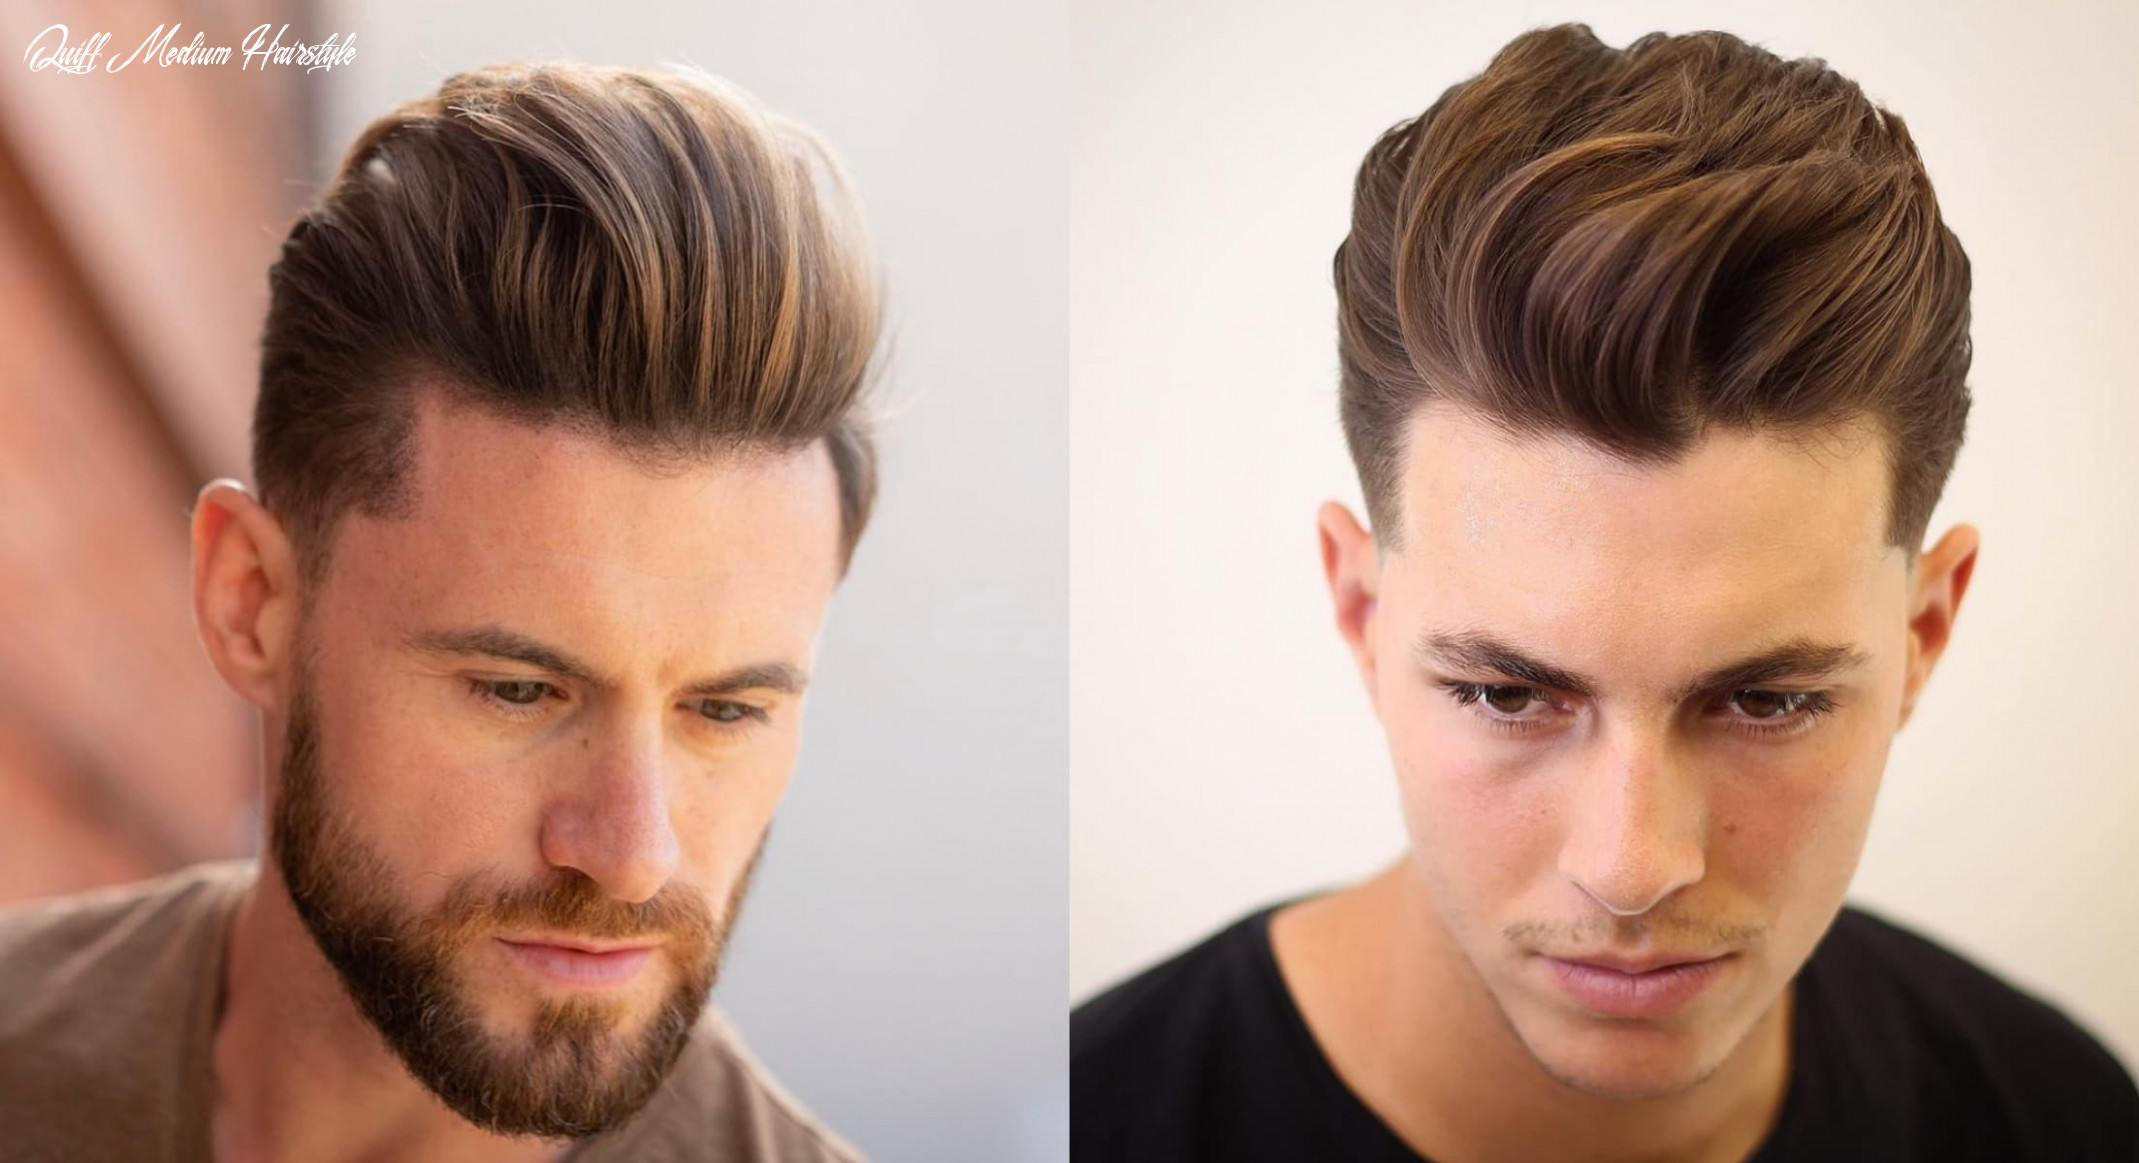 9 gorgeous quiff hairstyles for men of all ages | stylesrant quiff medium hairstyle